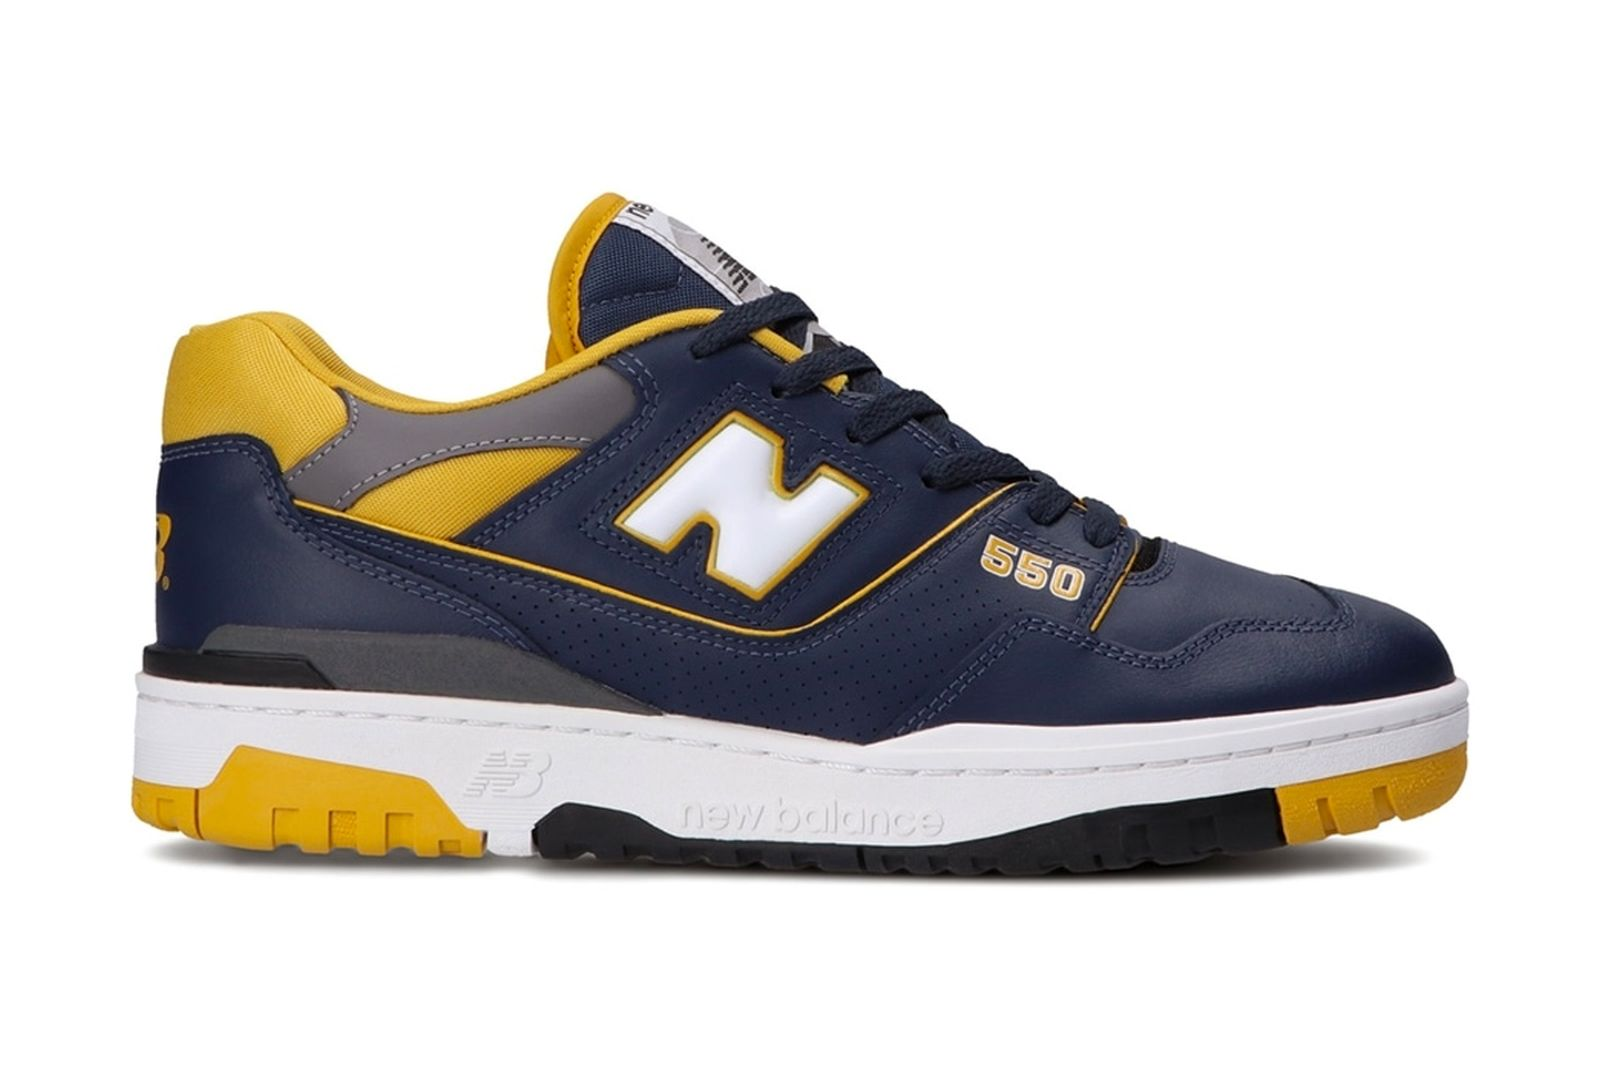 New Balance 550 Spring Colorways: Official Images & Buy Here